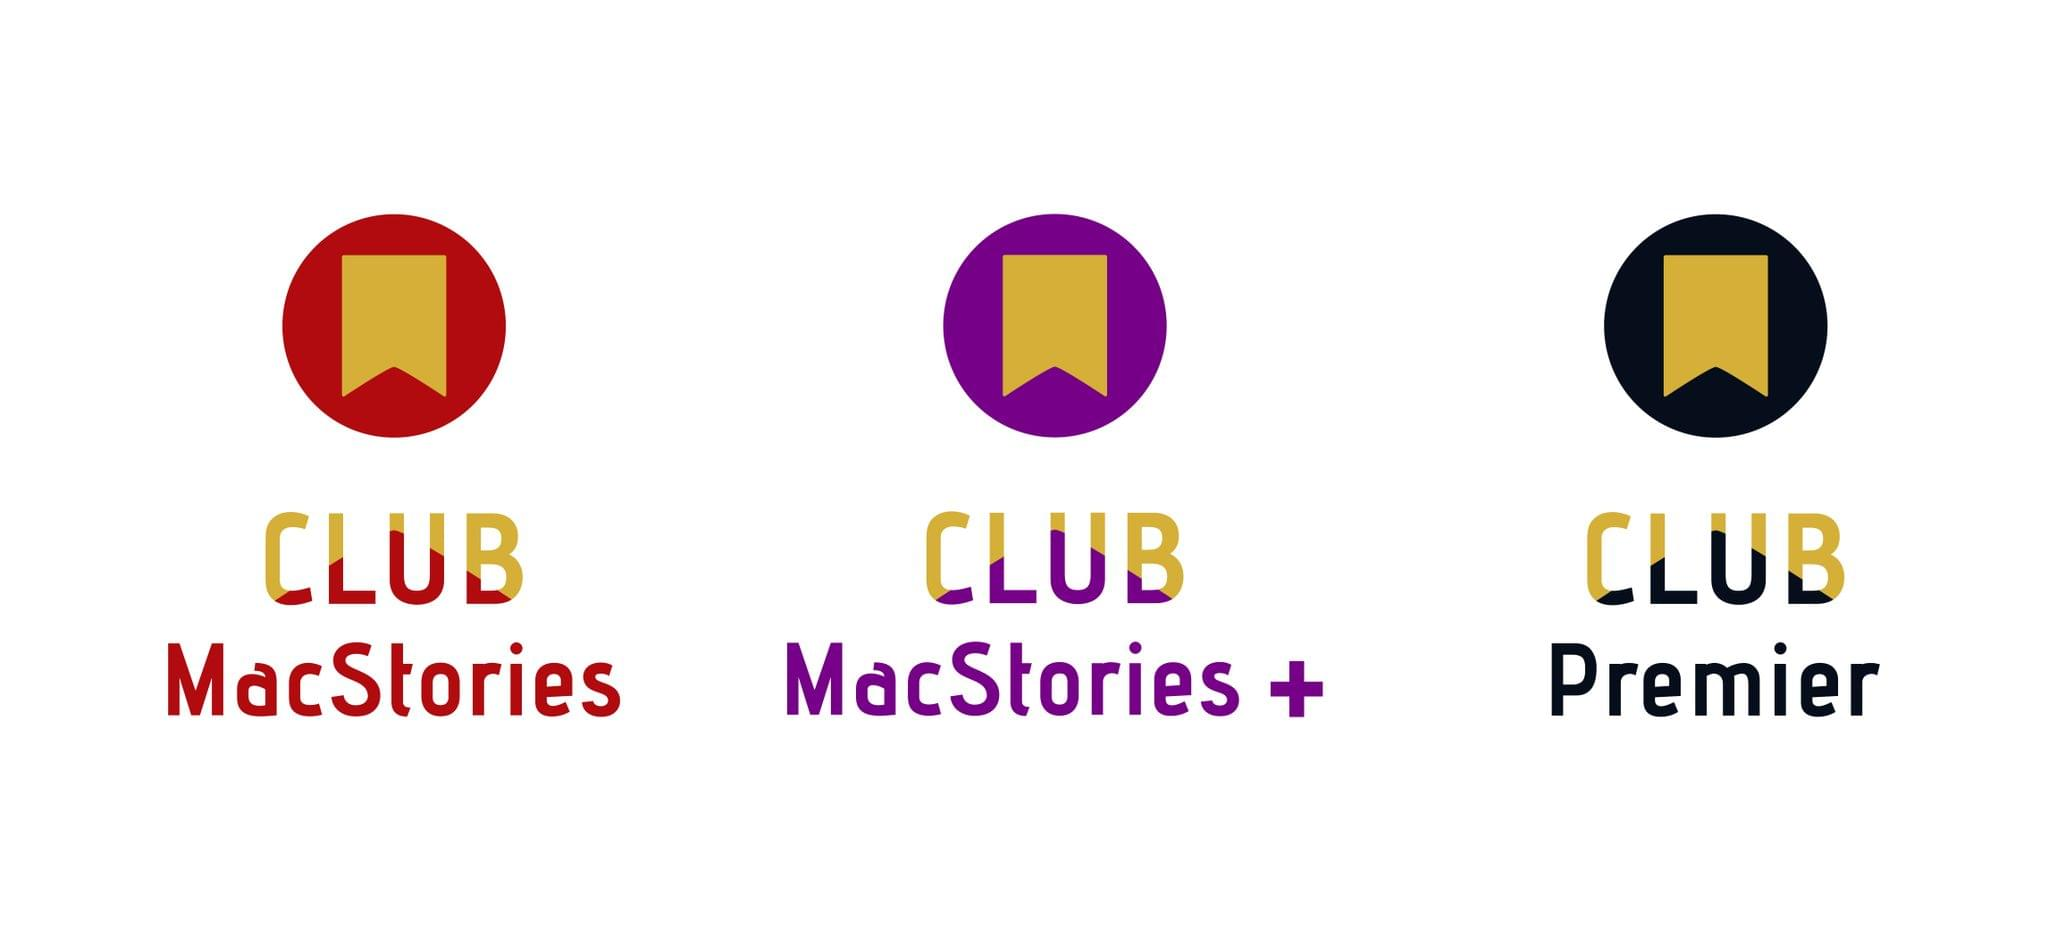 Our new Club MacStories identity and the three tiers.